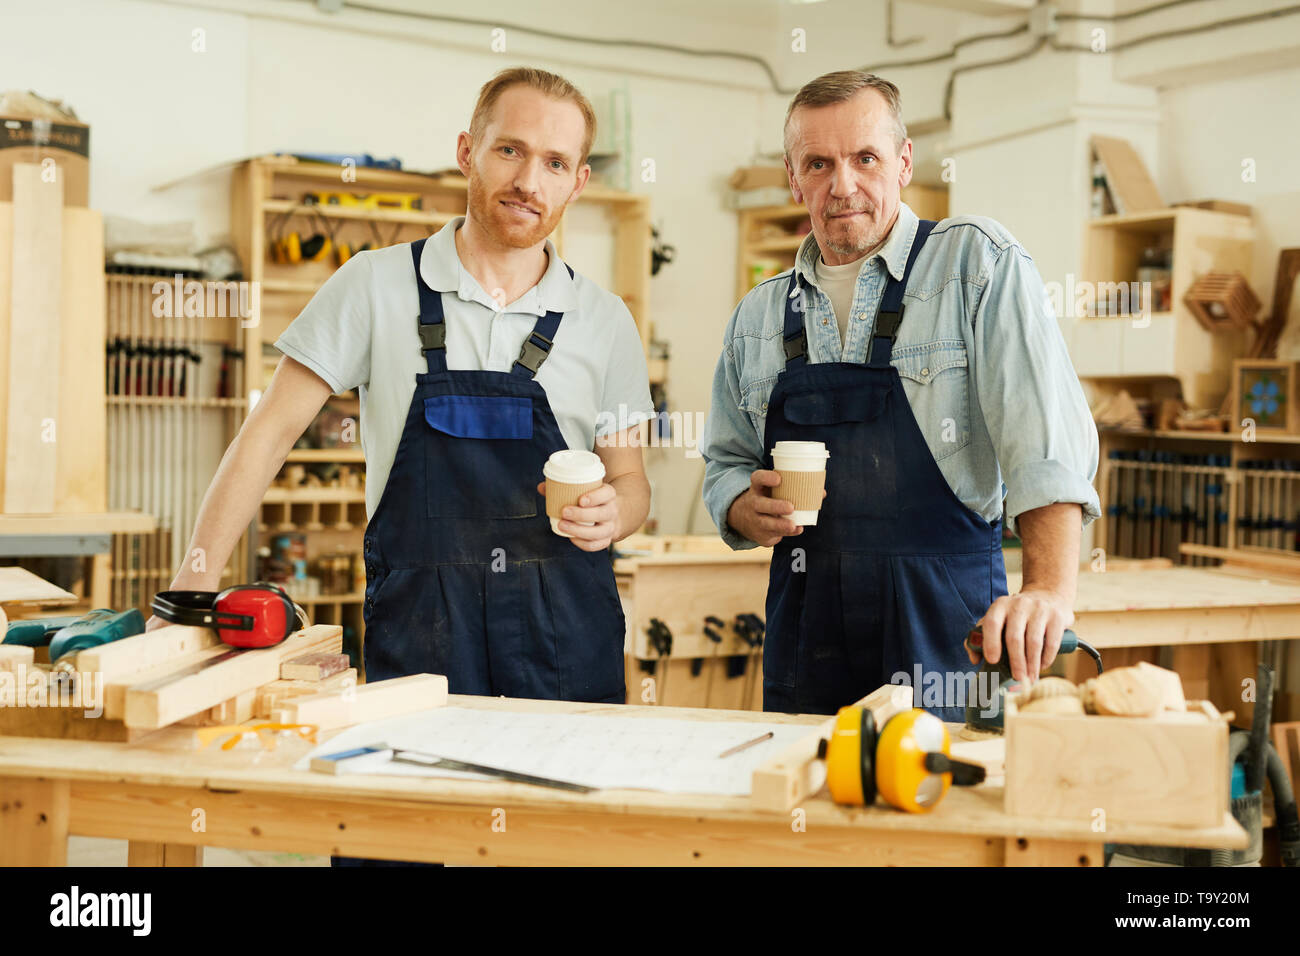 Waist up portrait of two carpenters looking at camera while standing in joinery workshop, copy space - Stock Image